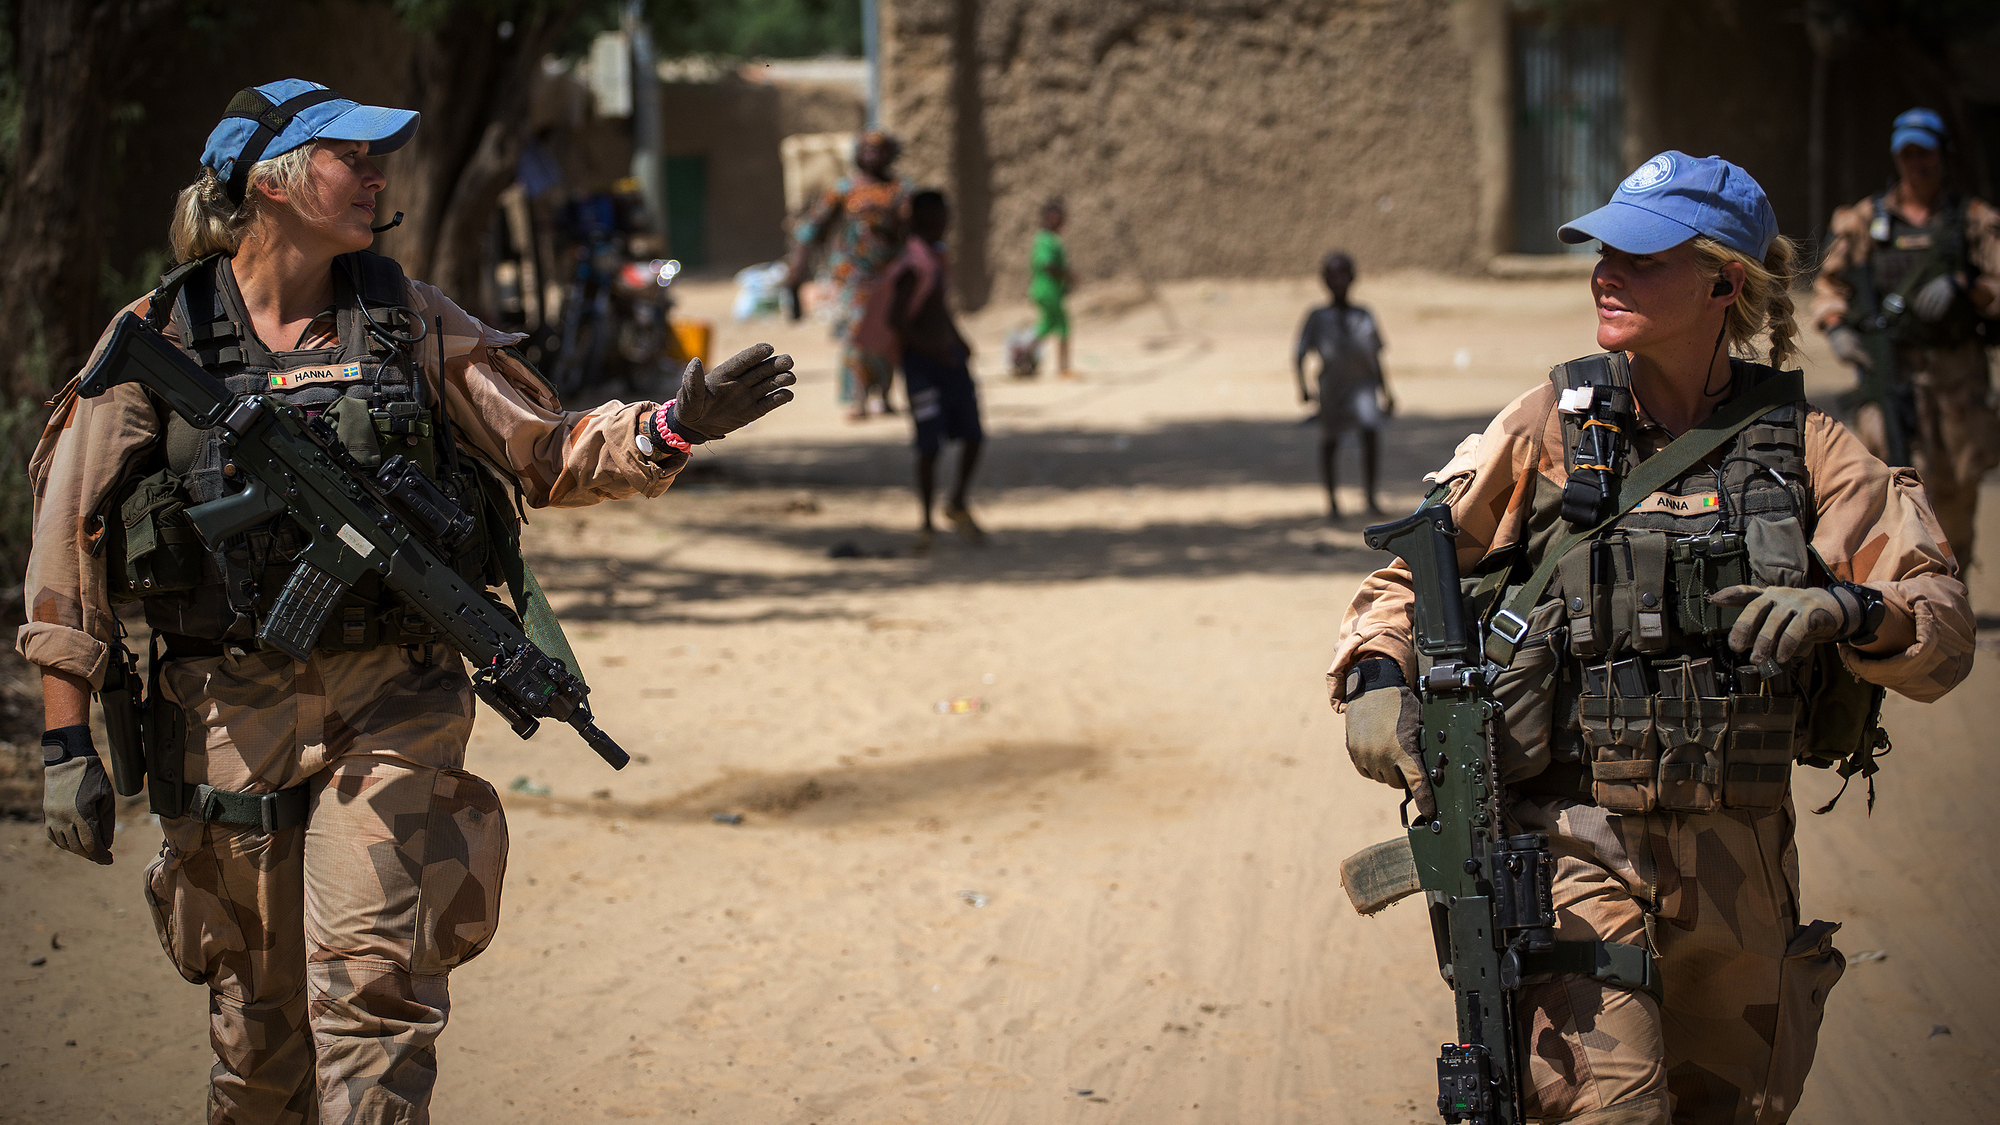 Two female Swedish Marines walk down a street in Mali in 2018 with children in the background.